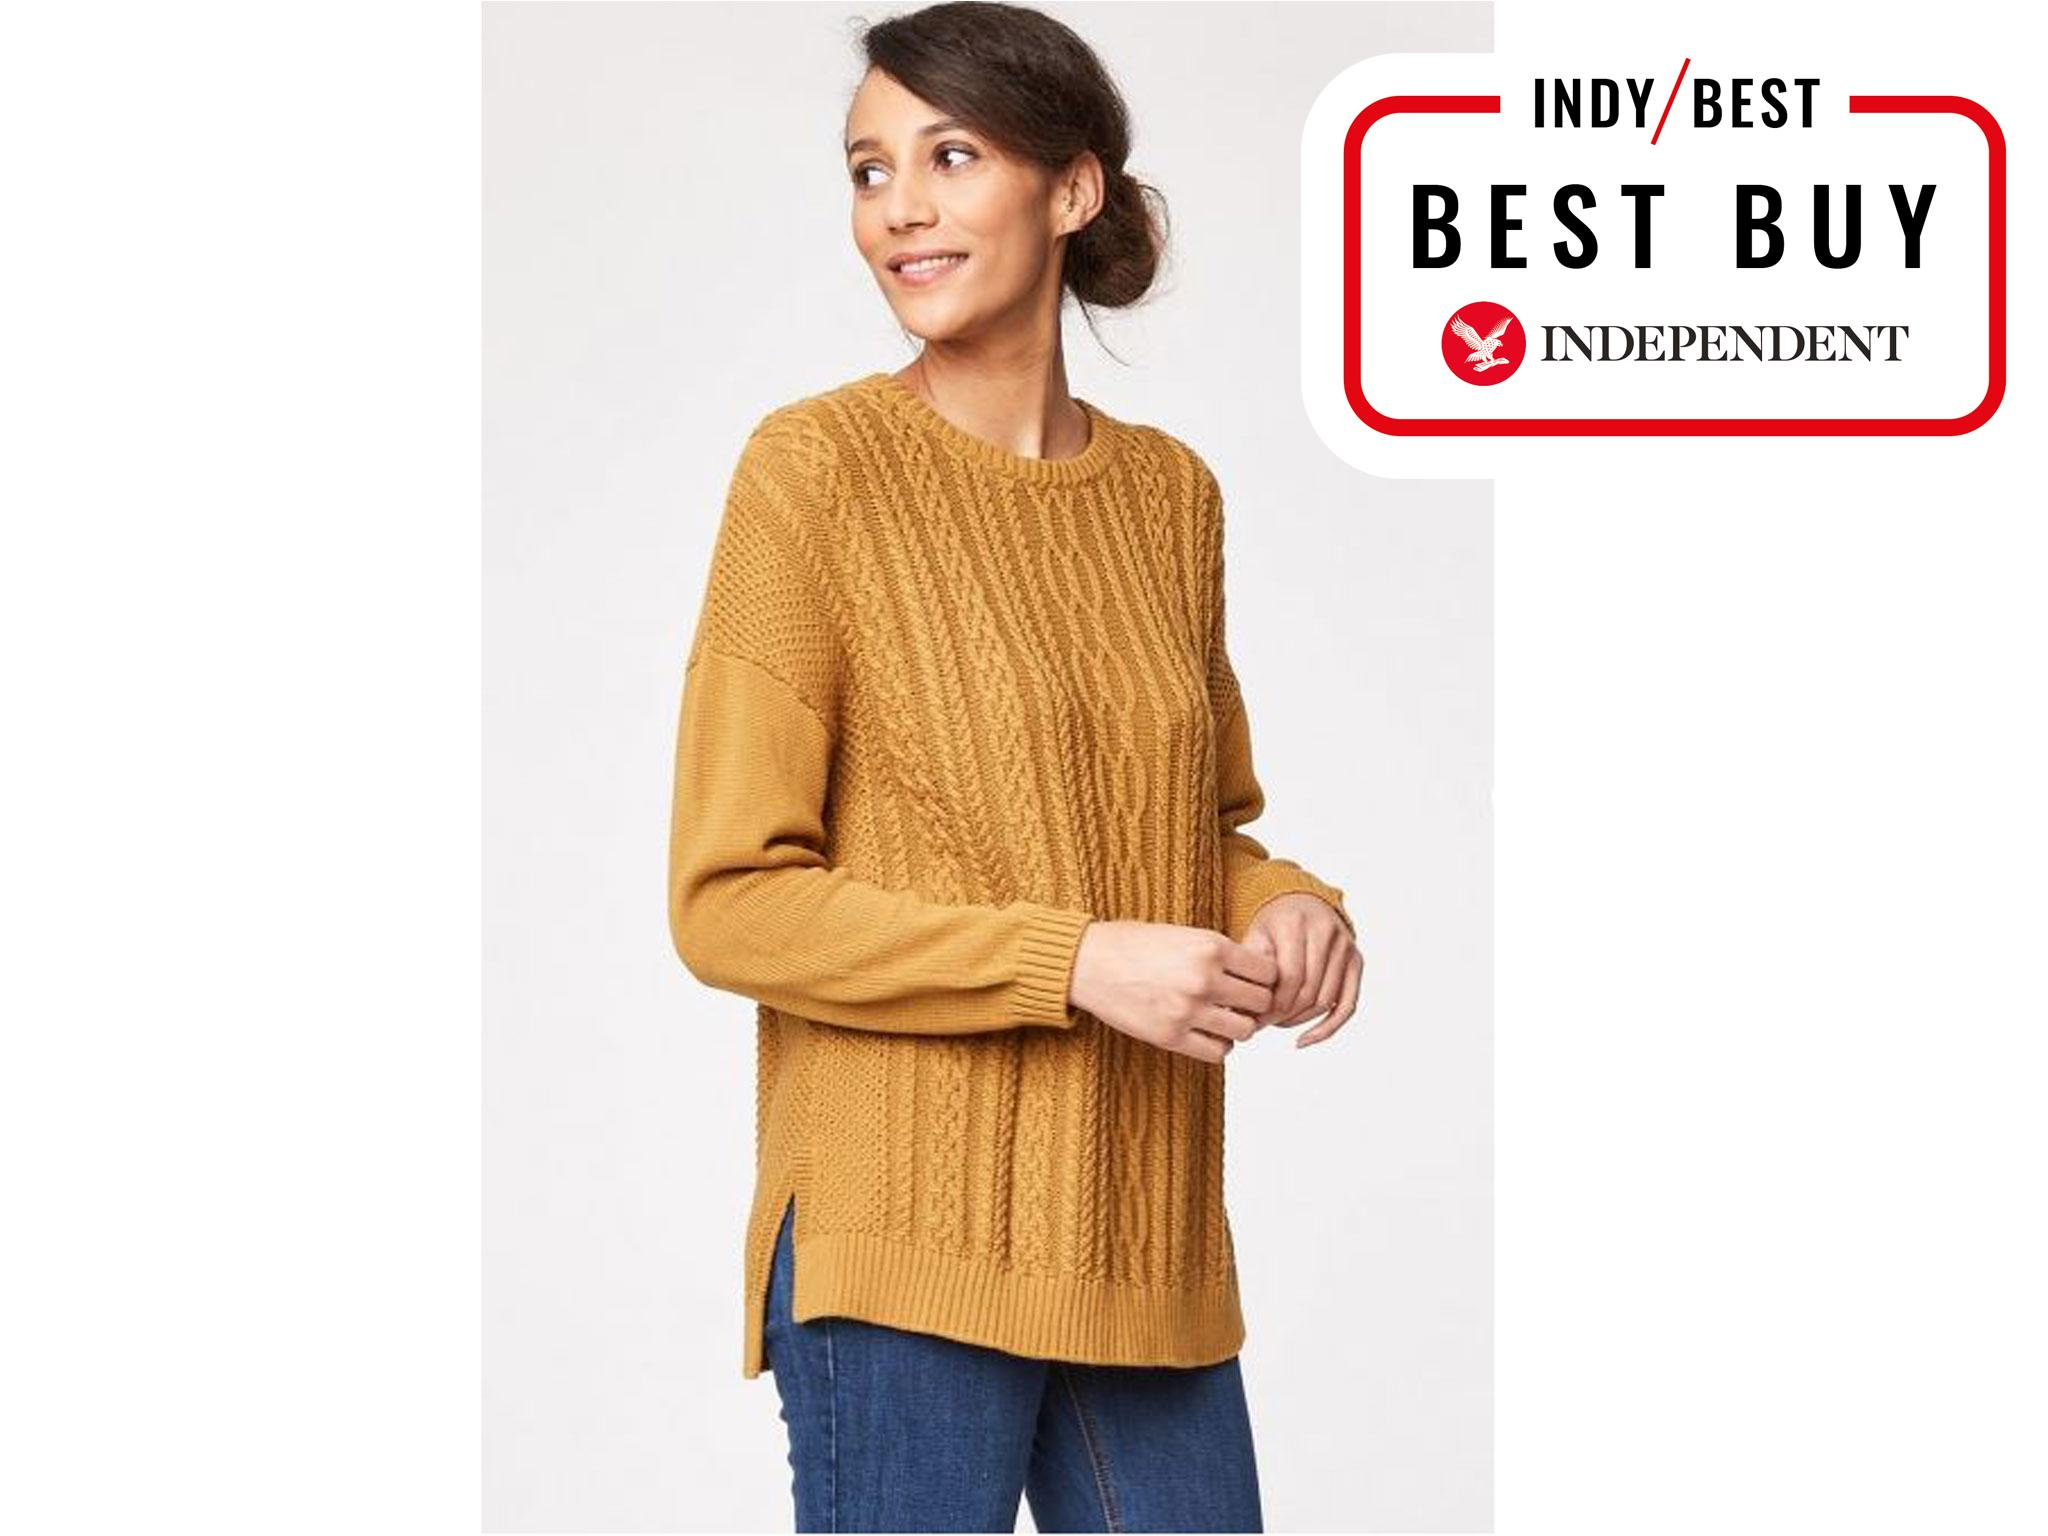 Dress made from knitwear: an excellent choice for practical women